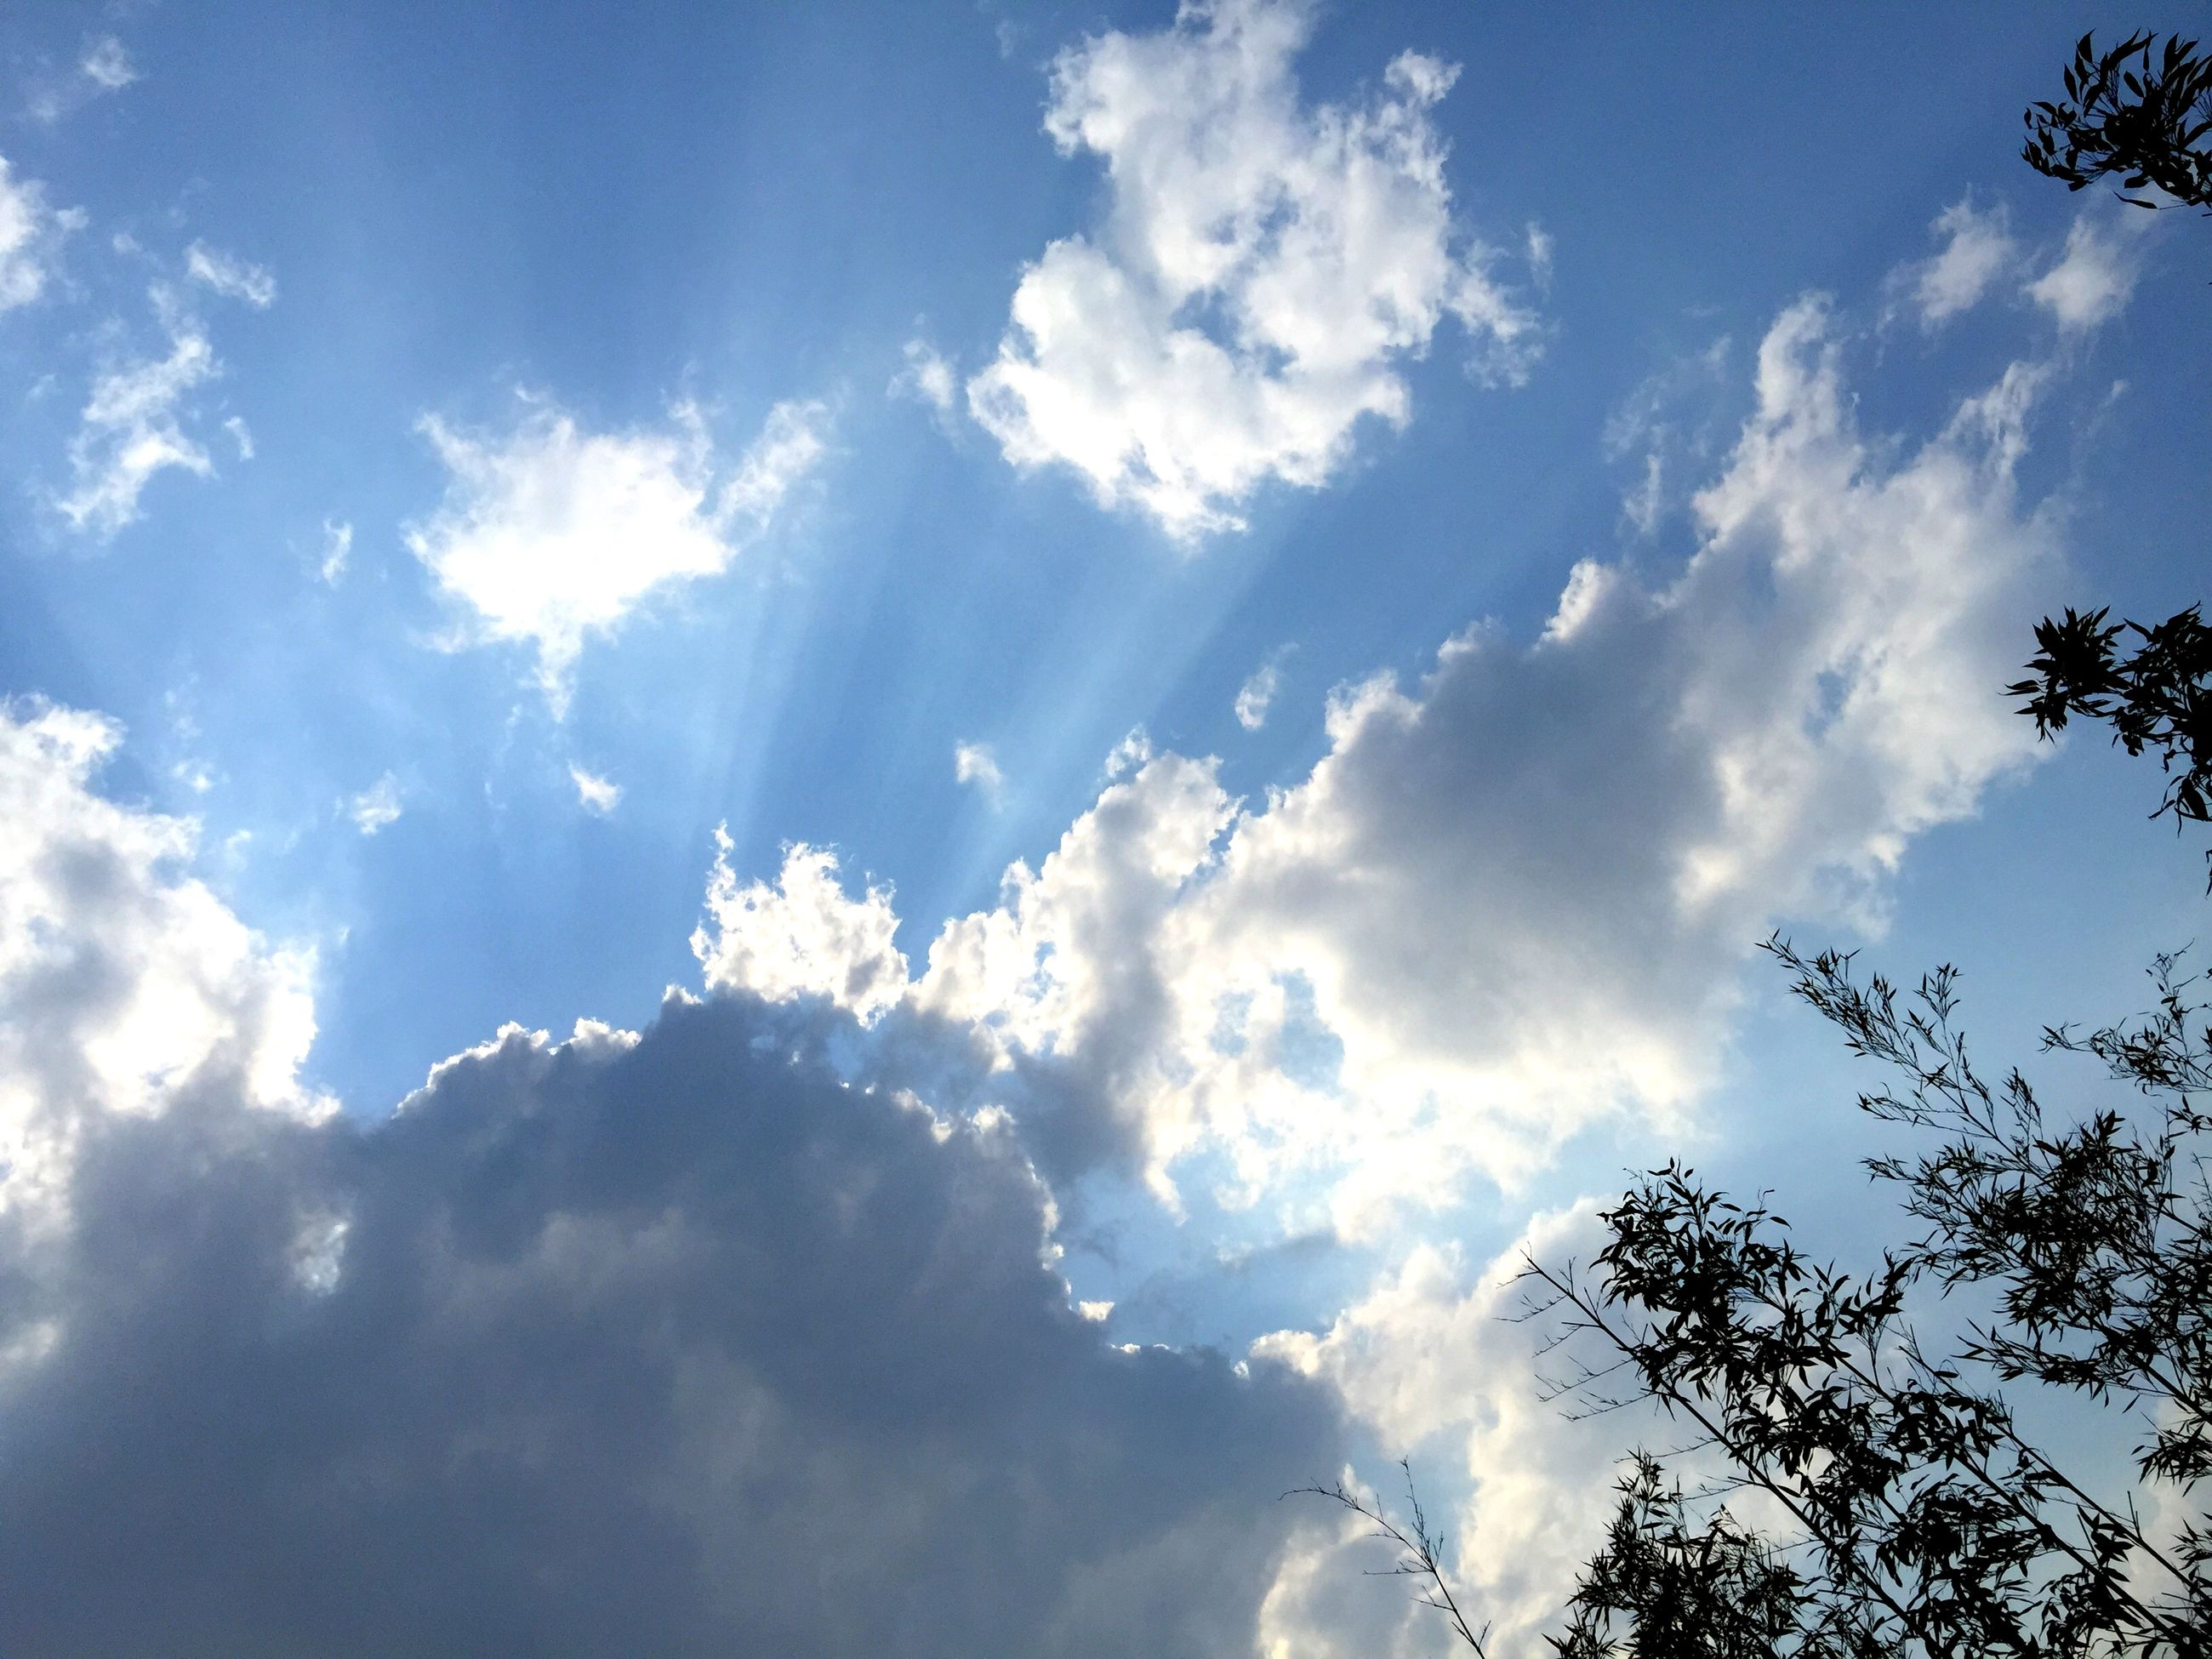 low angle view, sky, tree, cloud - sky, beauty in nature, tranquility, blue, nature, scenics, cloud, cloudy, tranquil scene, sunlight, sunbeam, growth, day, outdoors, no people, silhouette, idyllic